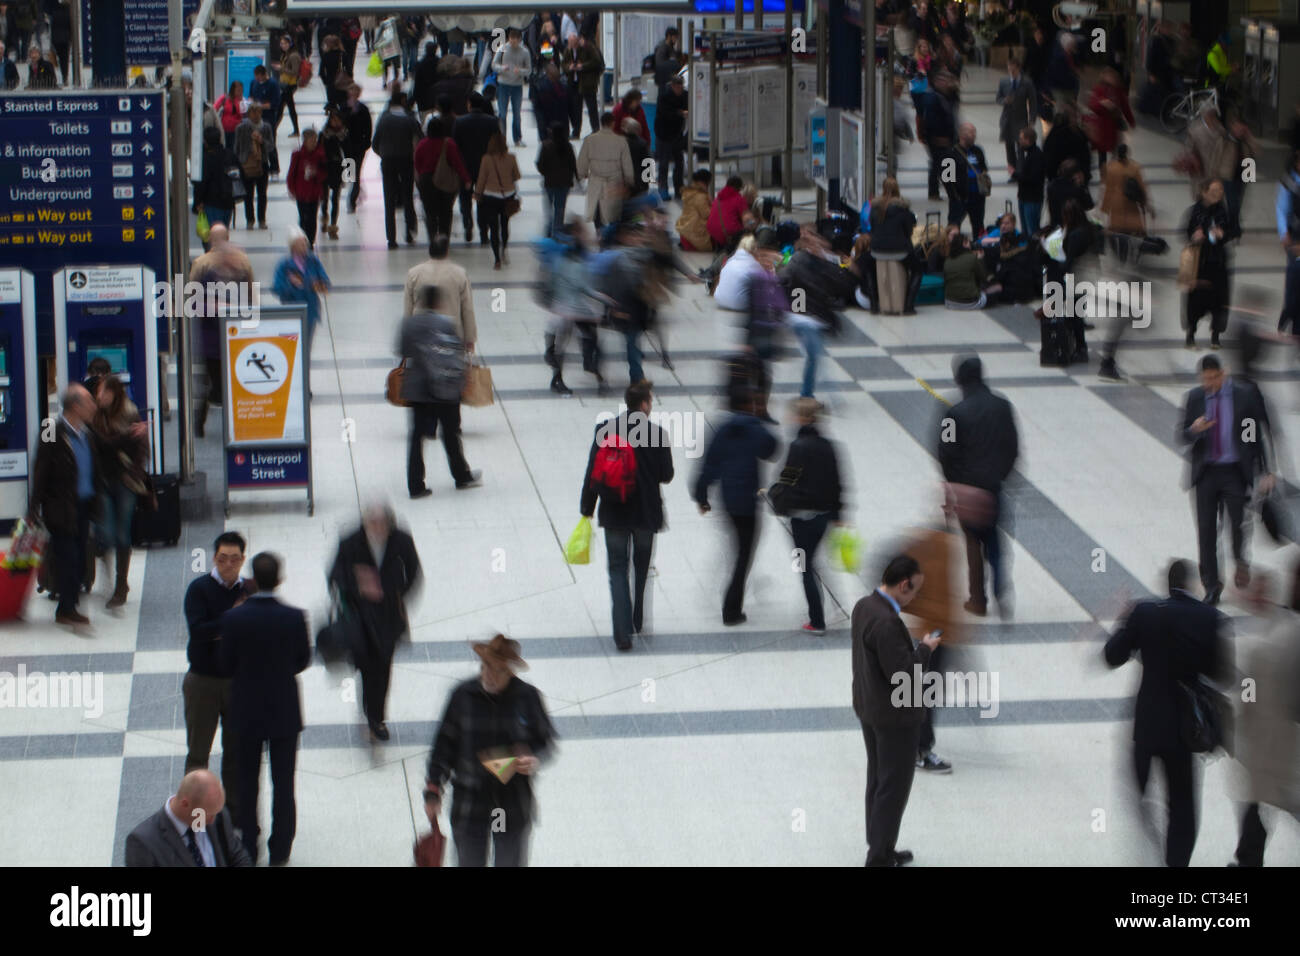 People. Arrival, departure concourse. Liverpool Street Rail Station. London. England. - Stock Image